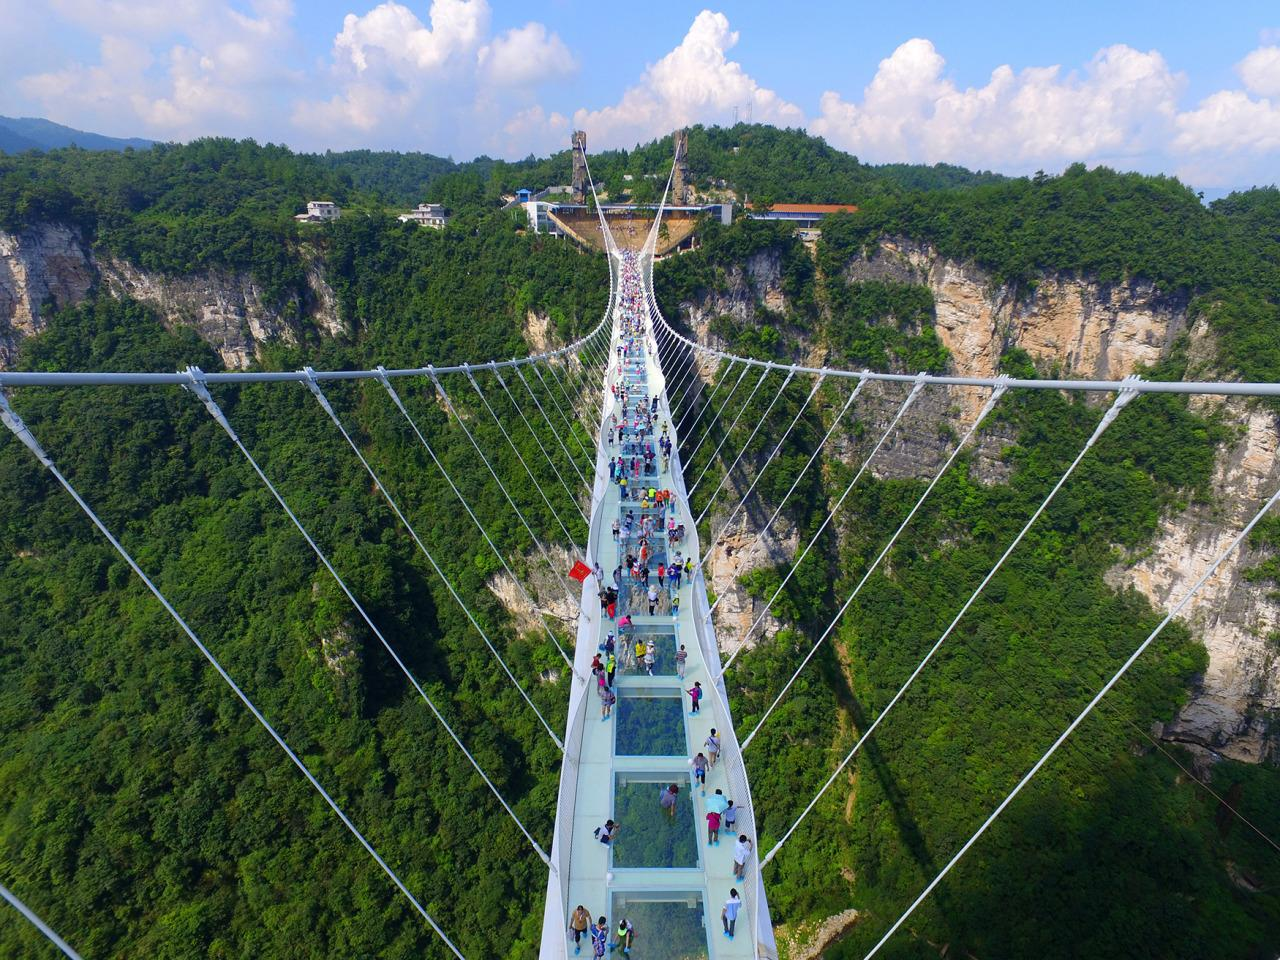 <p>Aerial view photo shows tourists visiting on the glass-bottom bridge at Zhangjiajie Grand Canyon on August 20, 2016 in Zhangjiajie, Hunan Province of China. (Photo: VCG/VCG via Getty Images)</p>